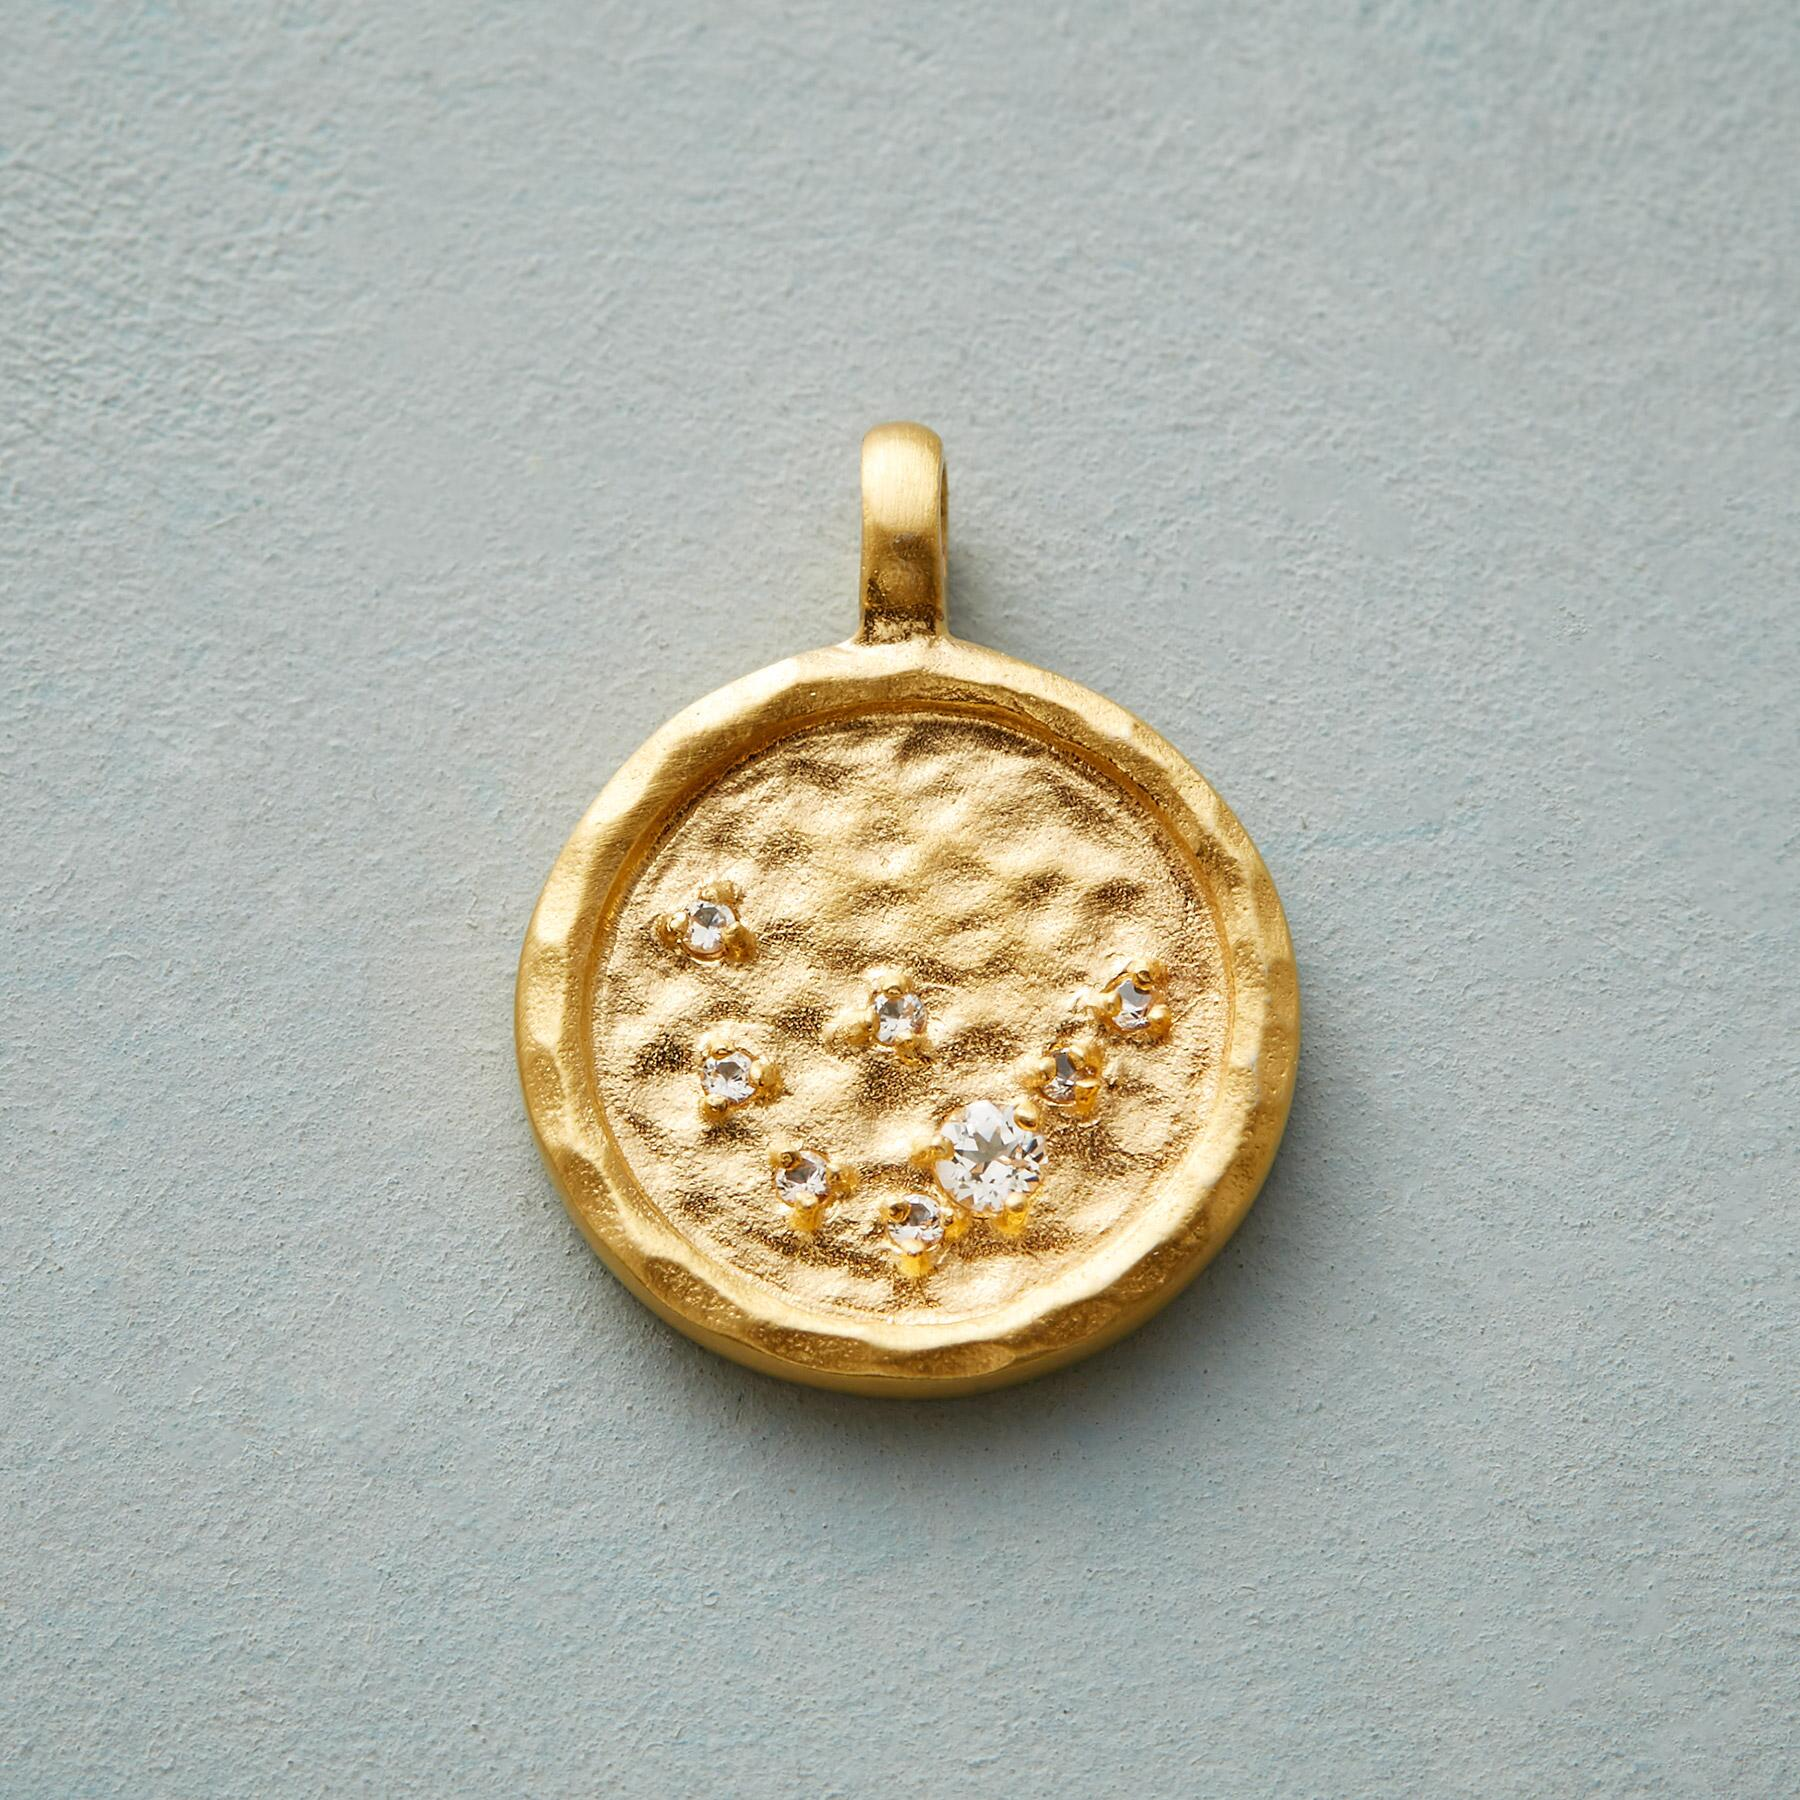 GOLD PLATE CHARMED ZODIAC: View 1